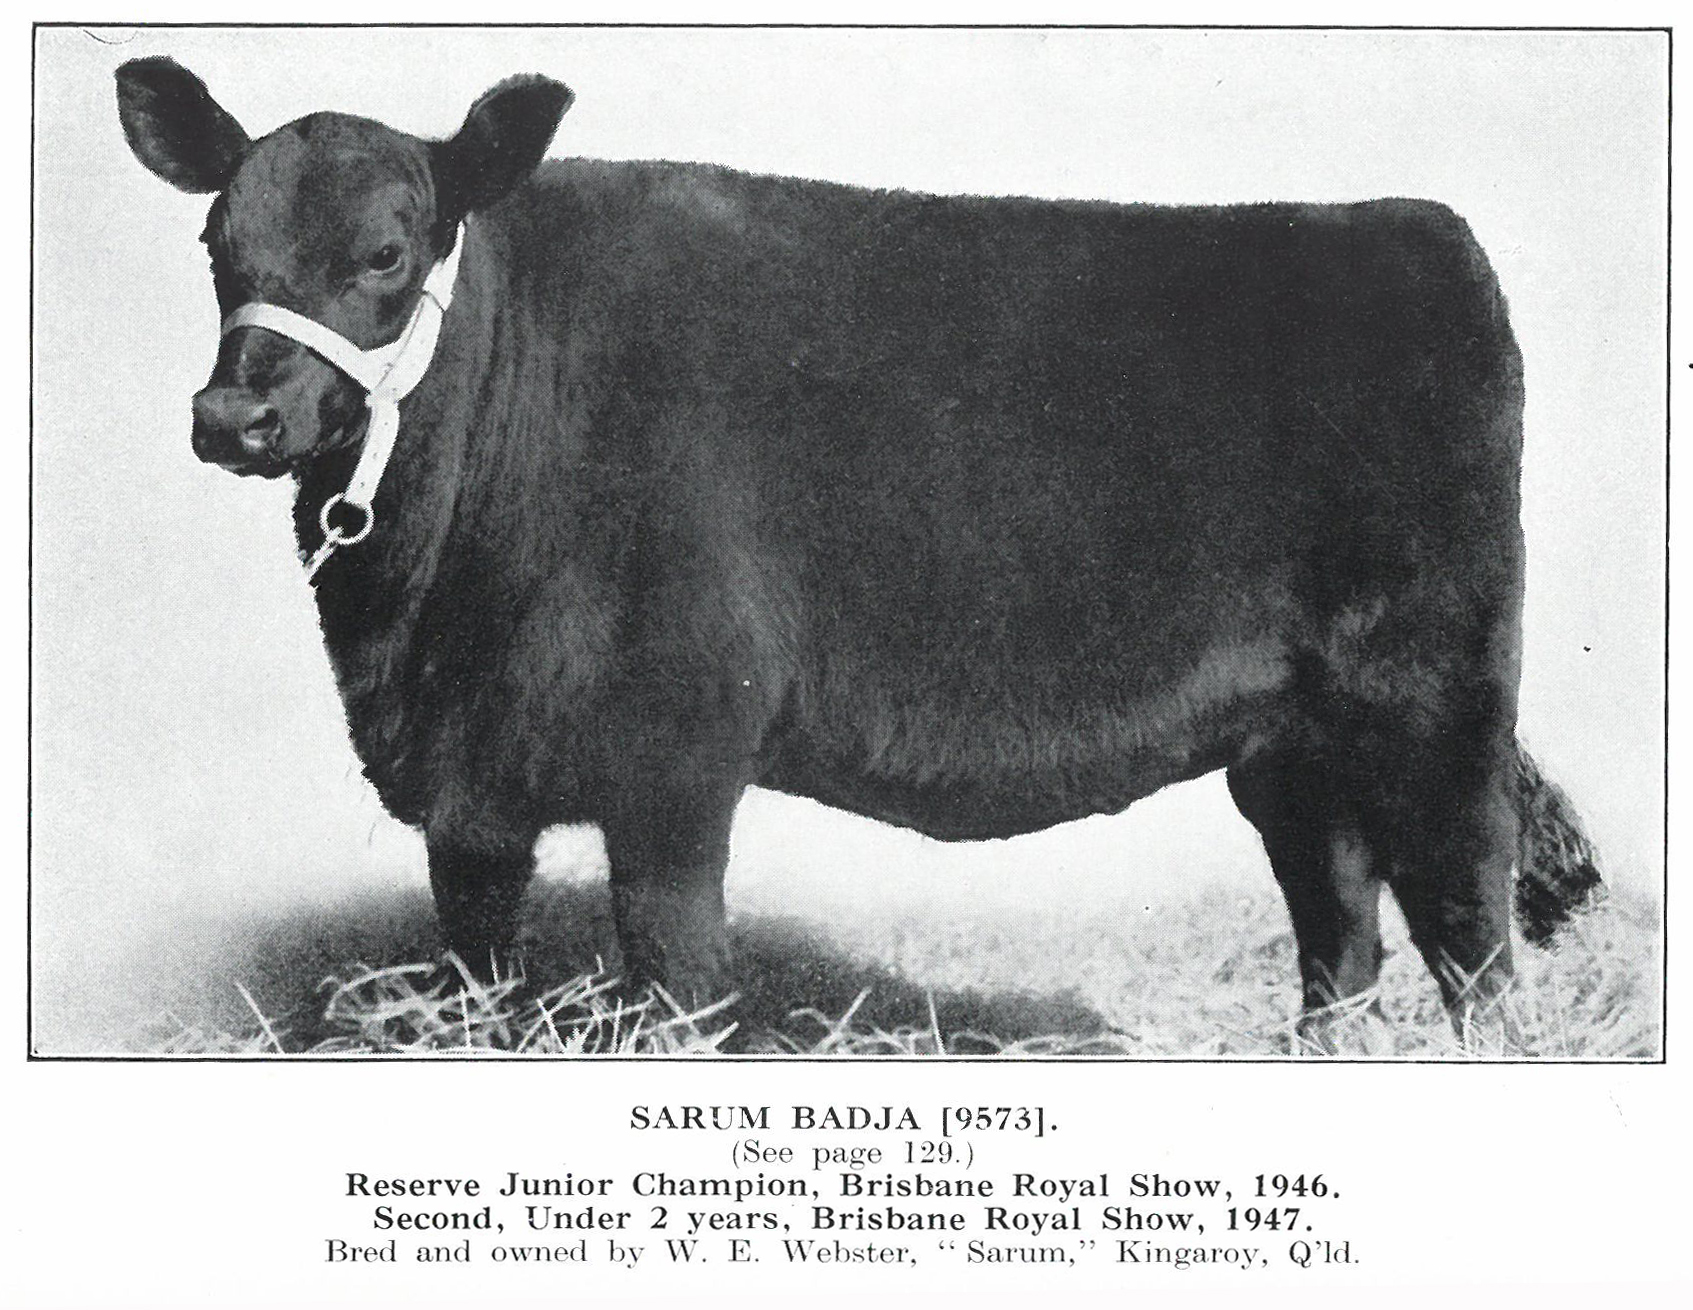 Sarum Badja